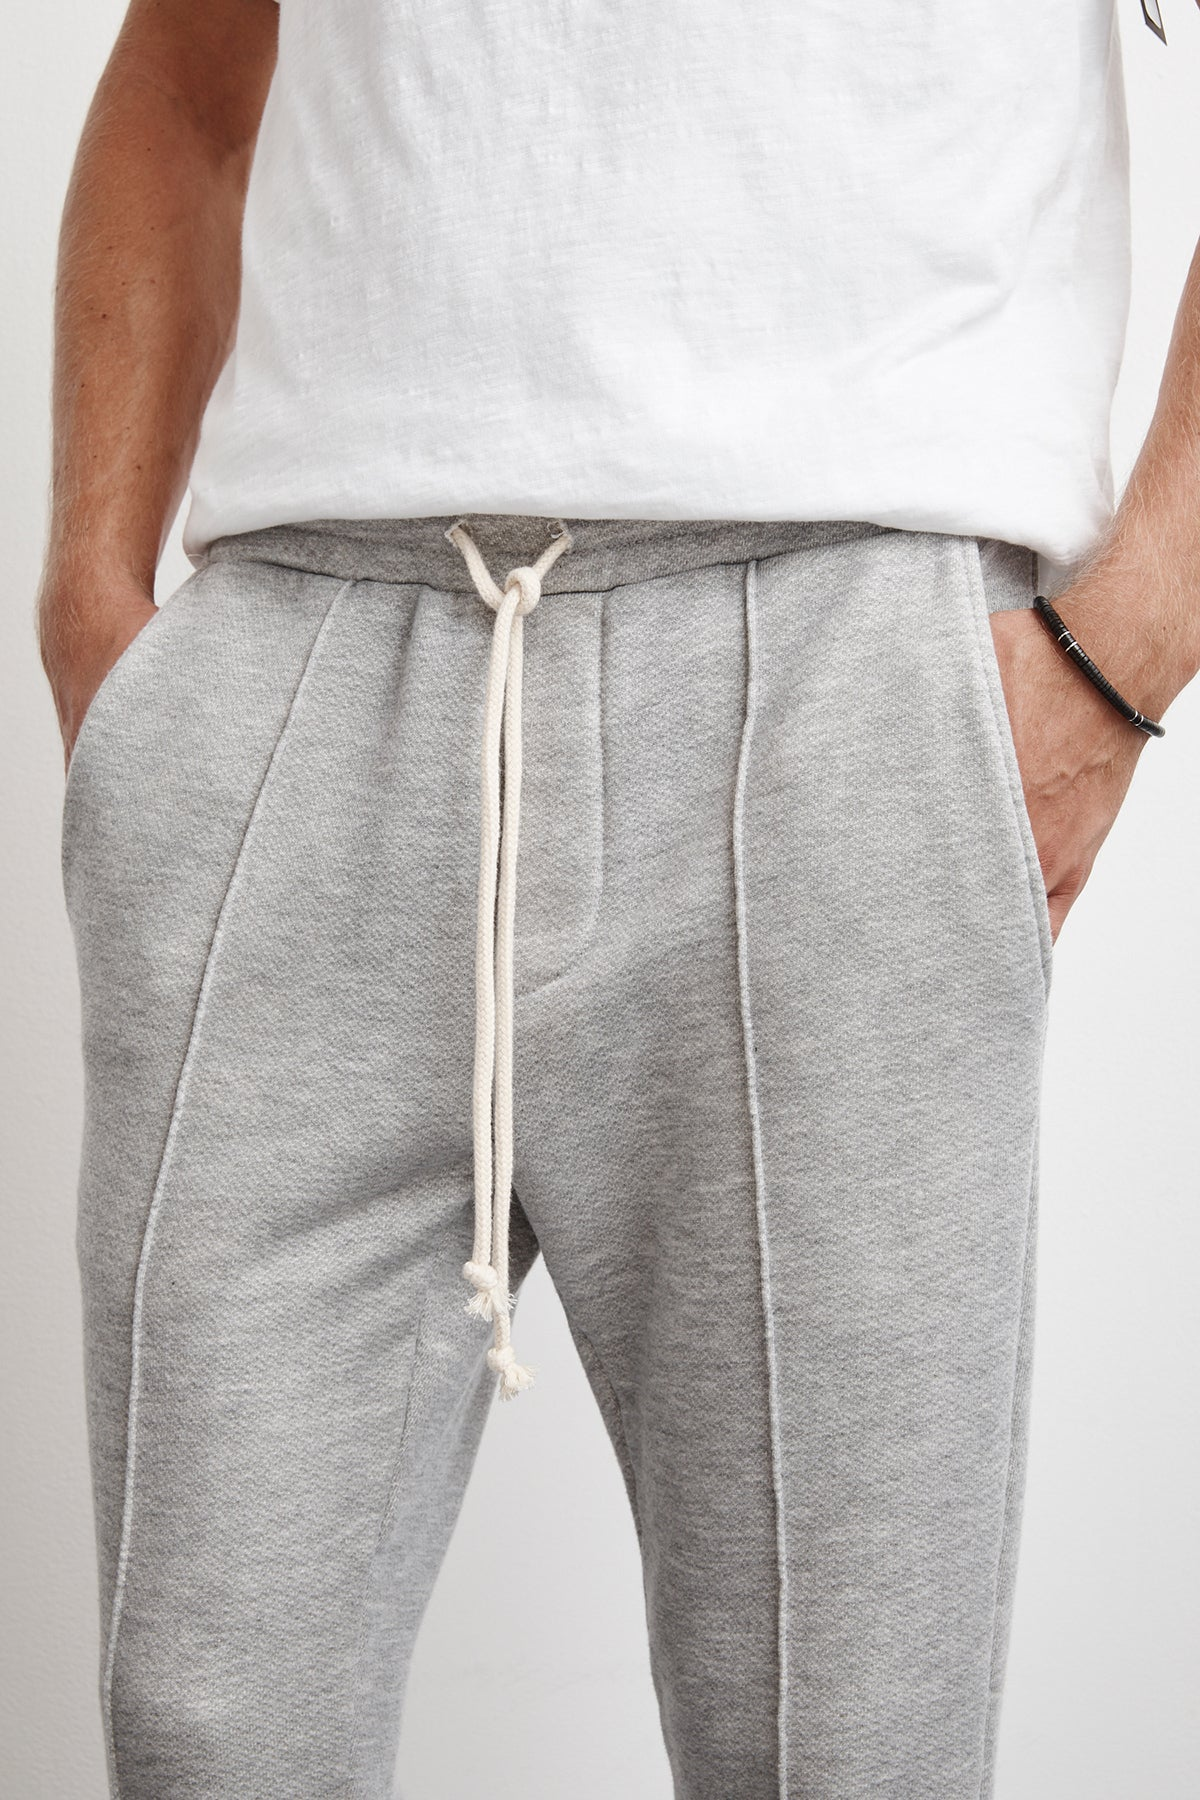 HYATT FLEECE CUFFED SWEATPANT